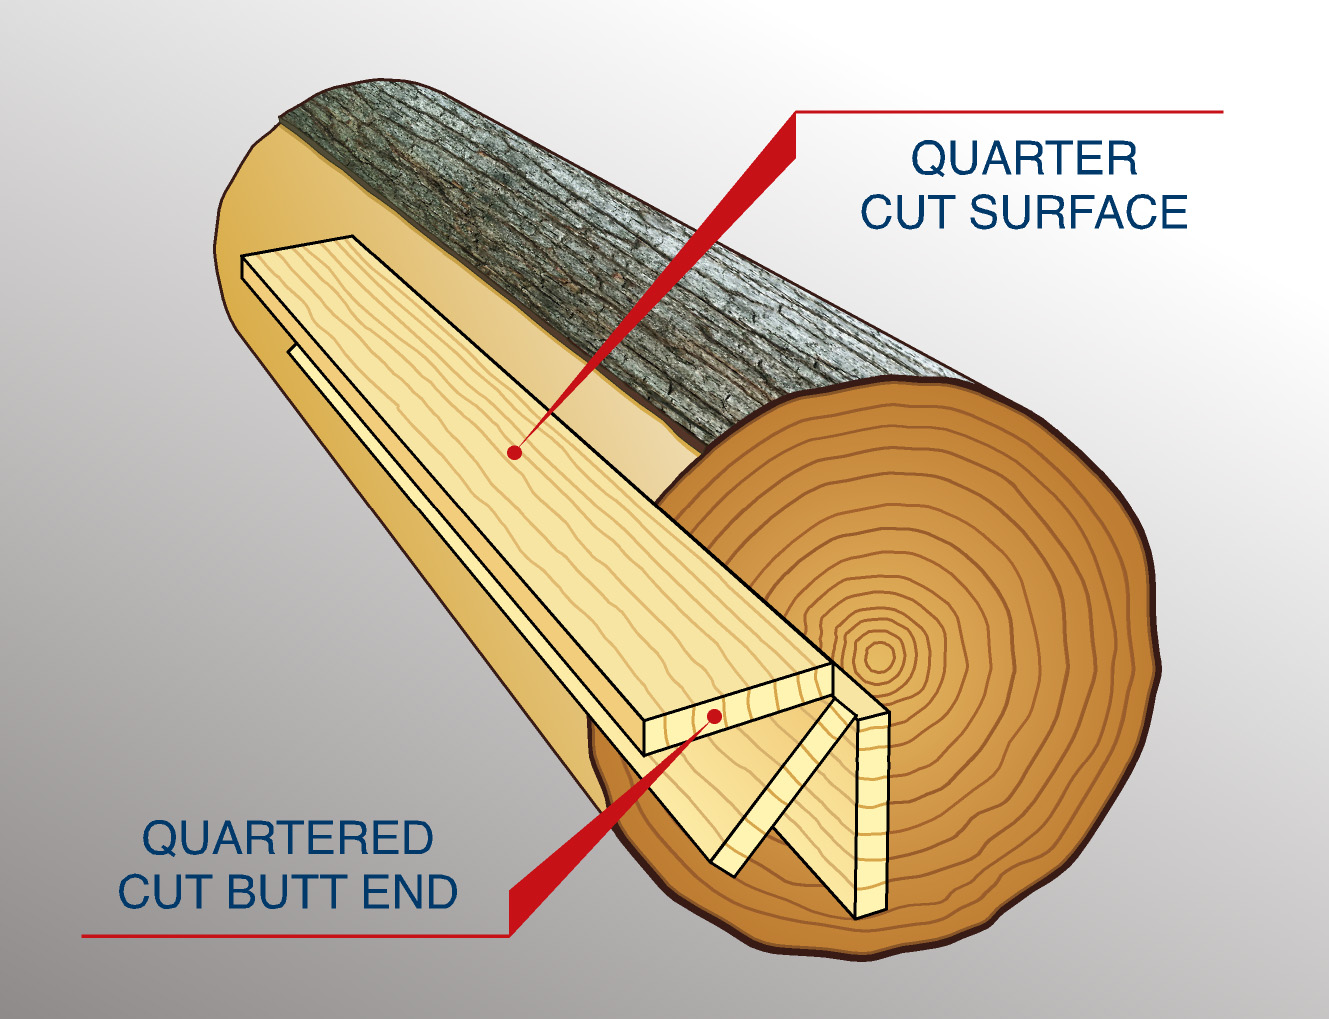 Quartered cut - Cross grain edgebanding